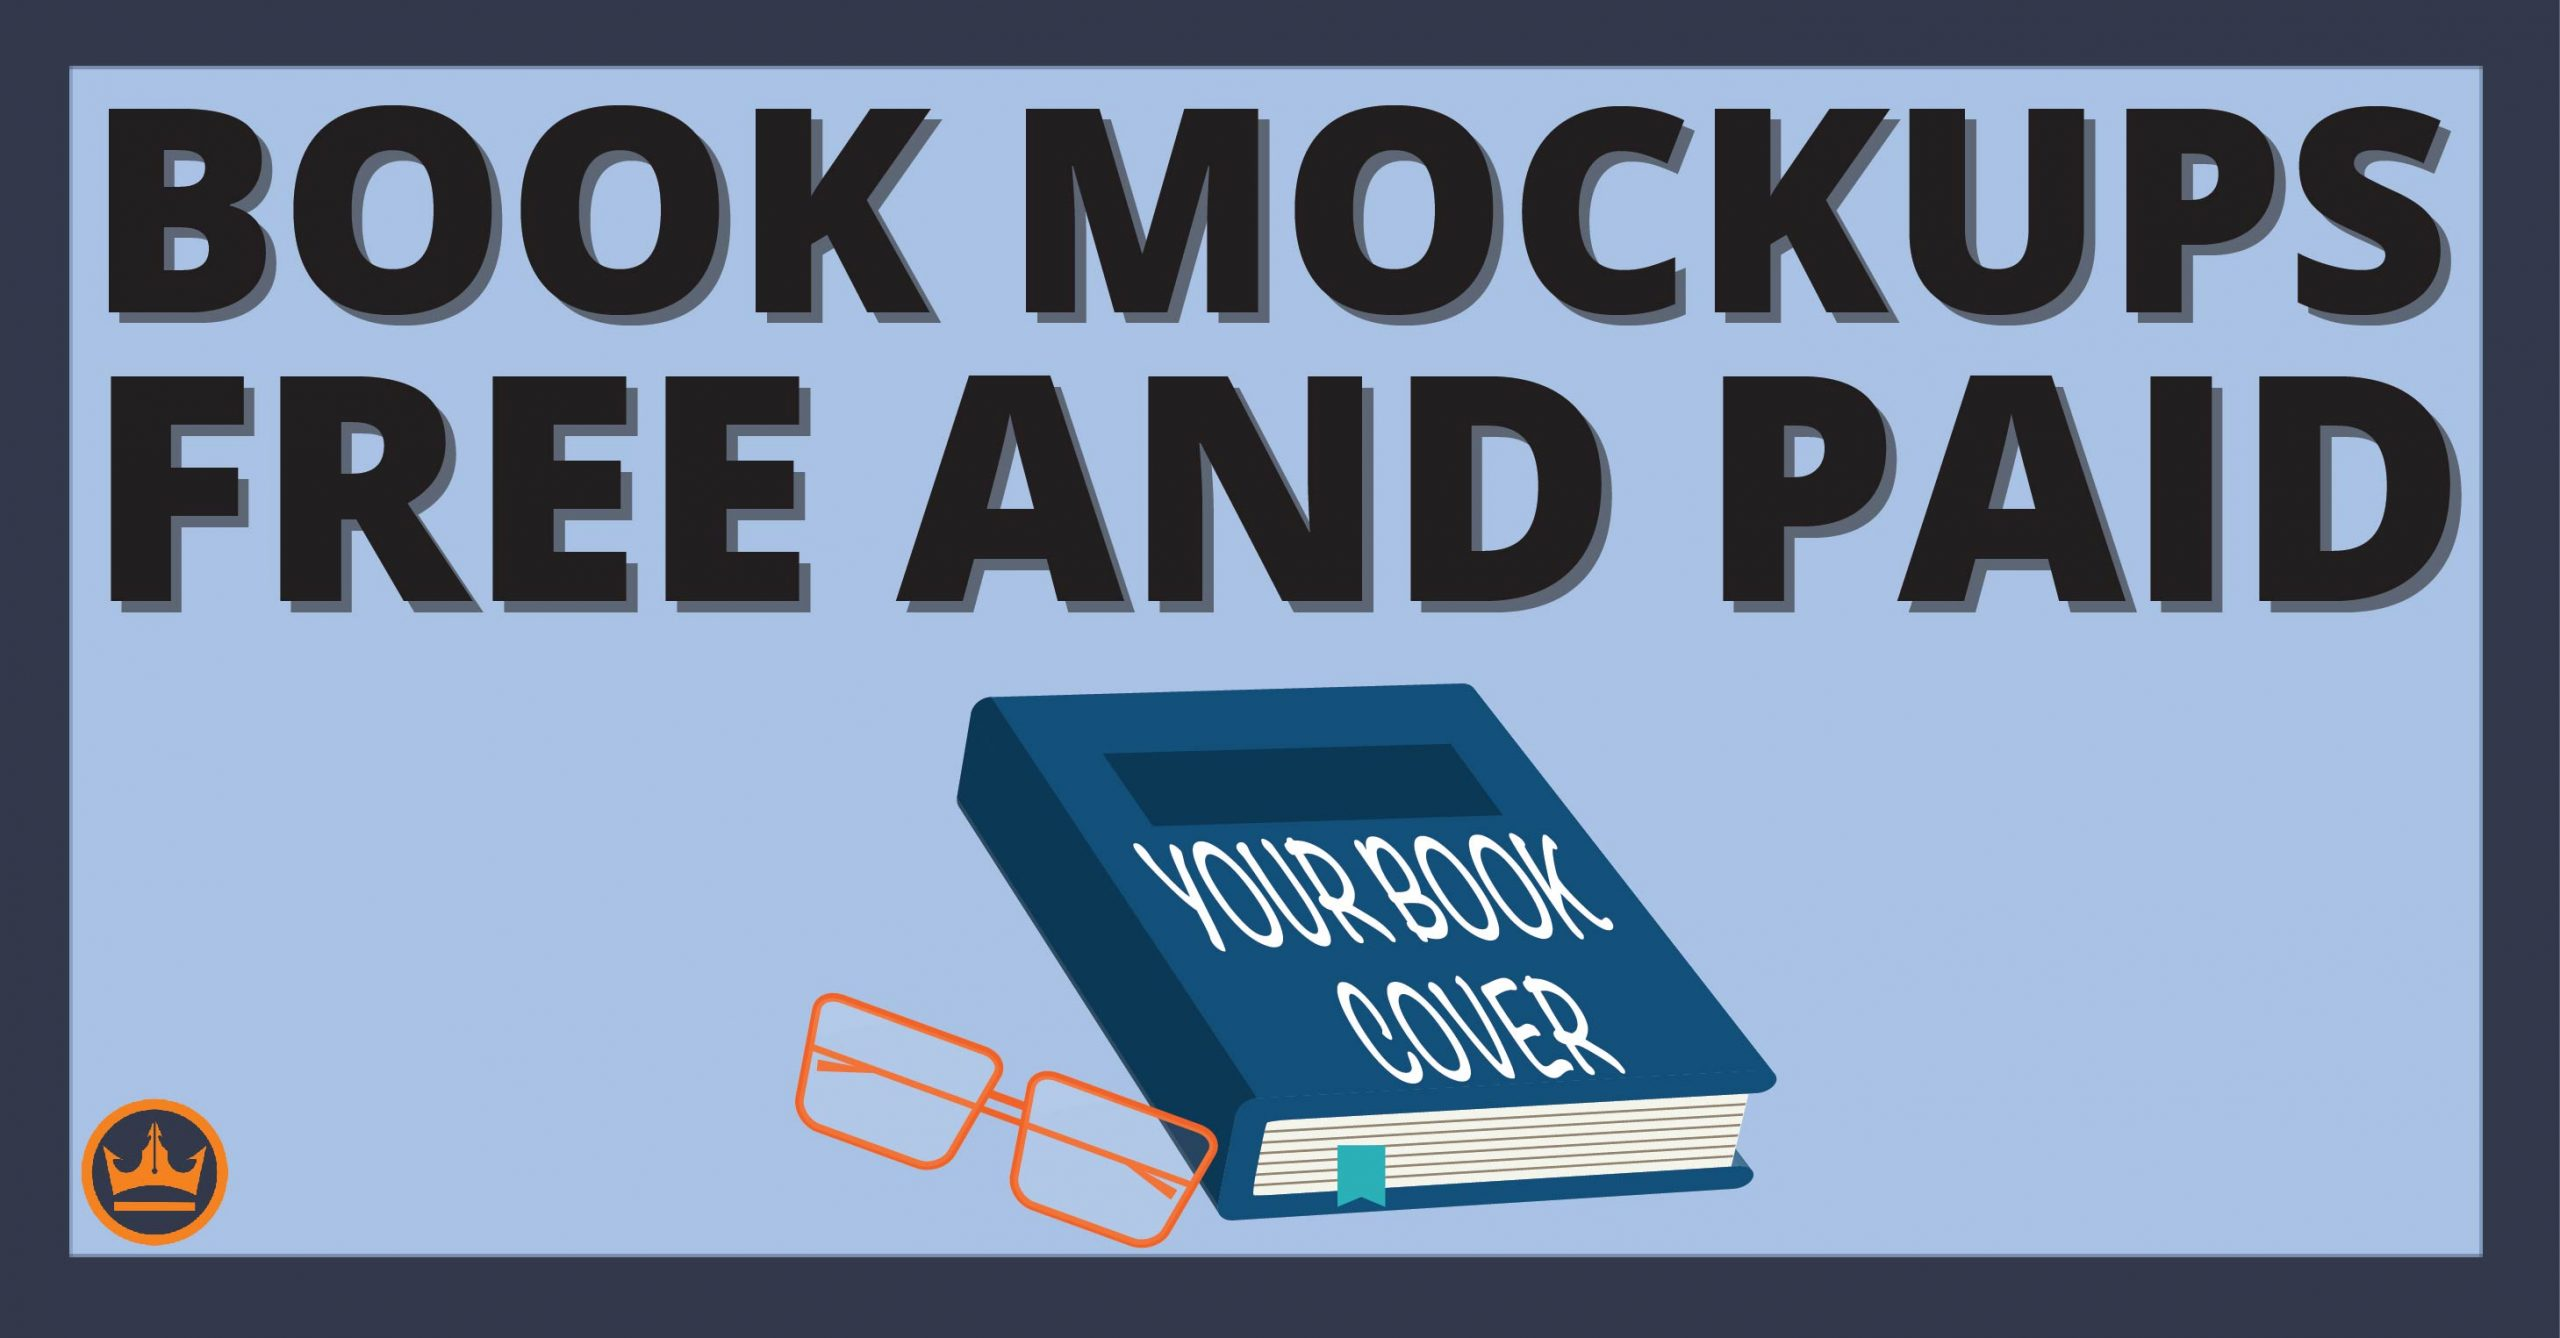 Because everyone is pressed for time, the need to look up the summary of this book or that one is sometimes a priority. Book Mockup Free And Paid Ways To Show Off Your Book